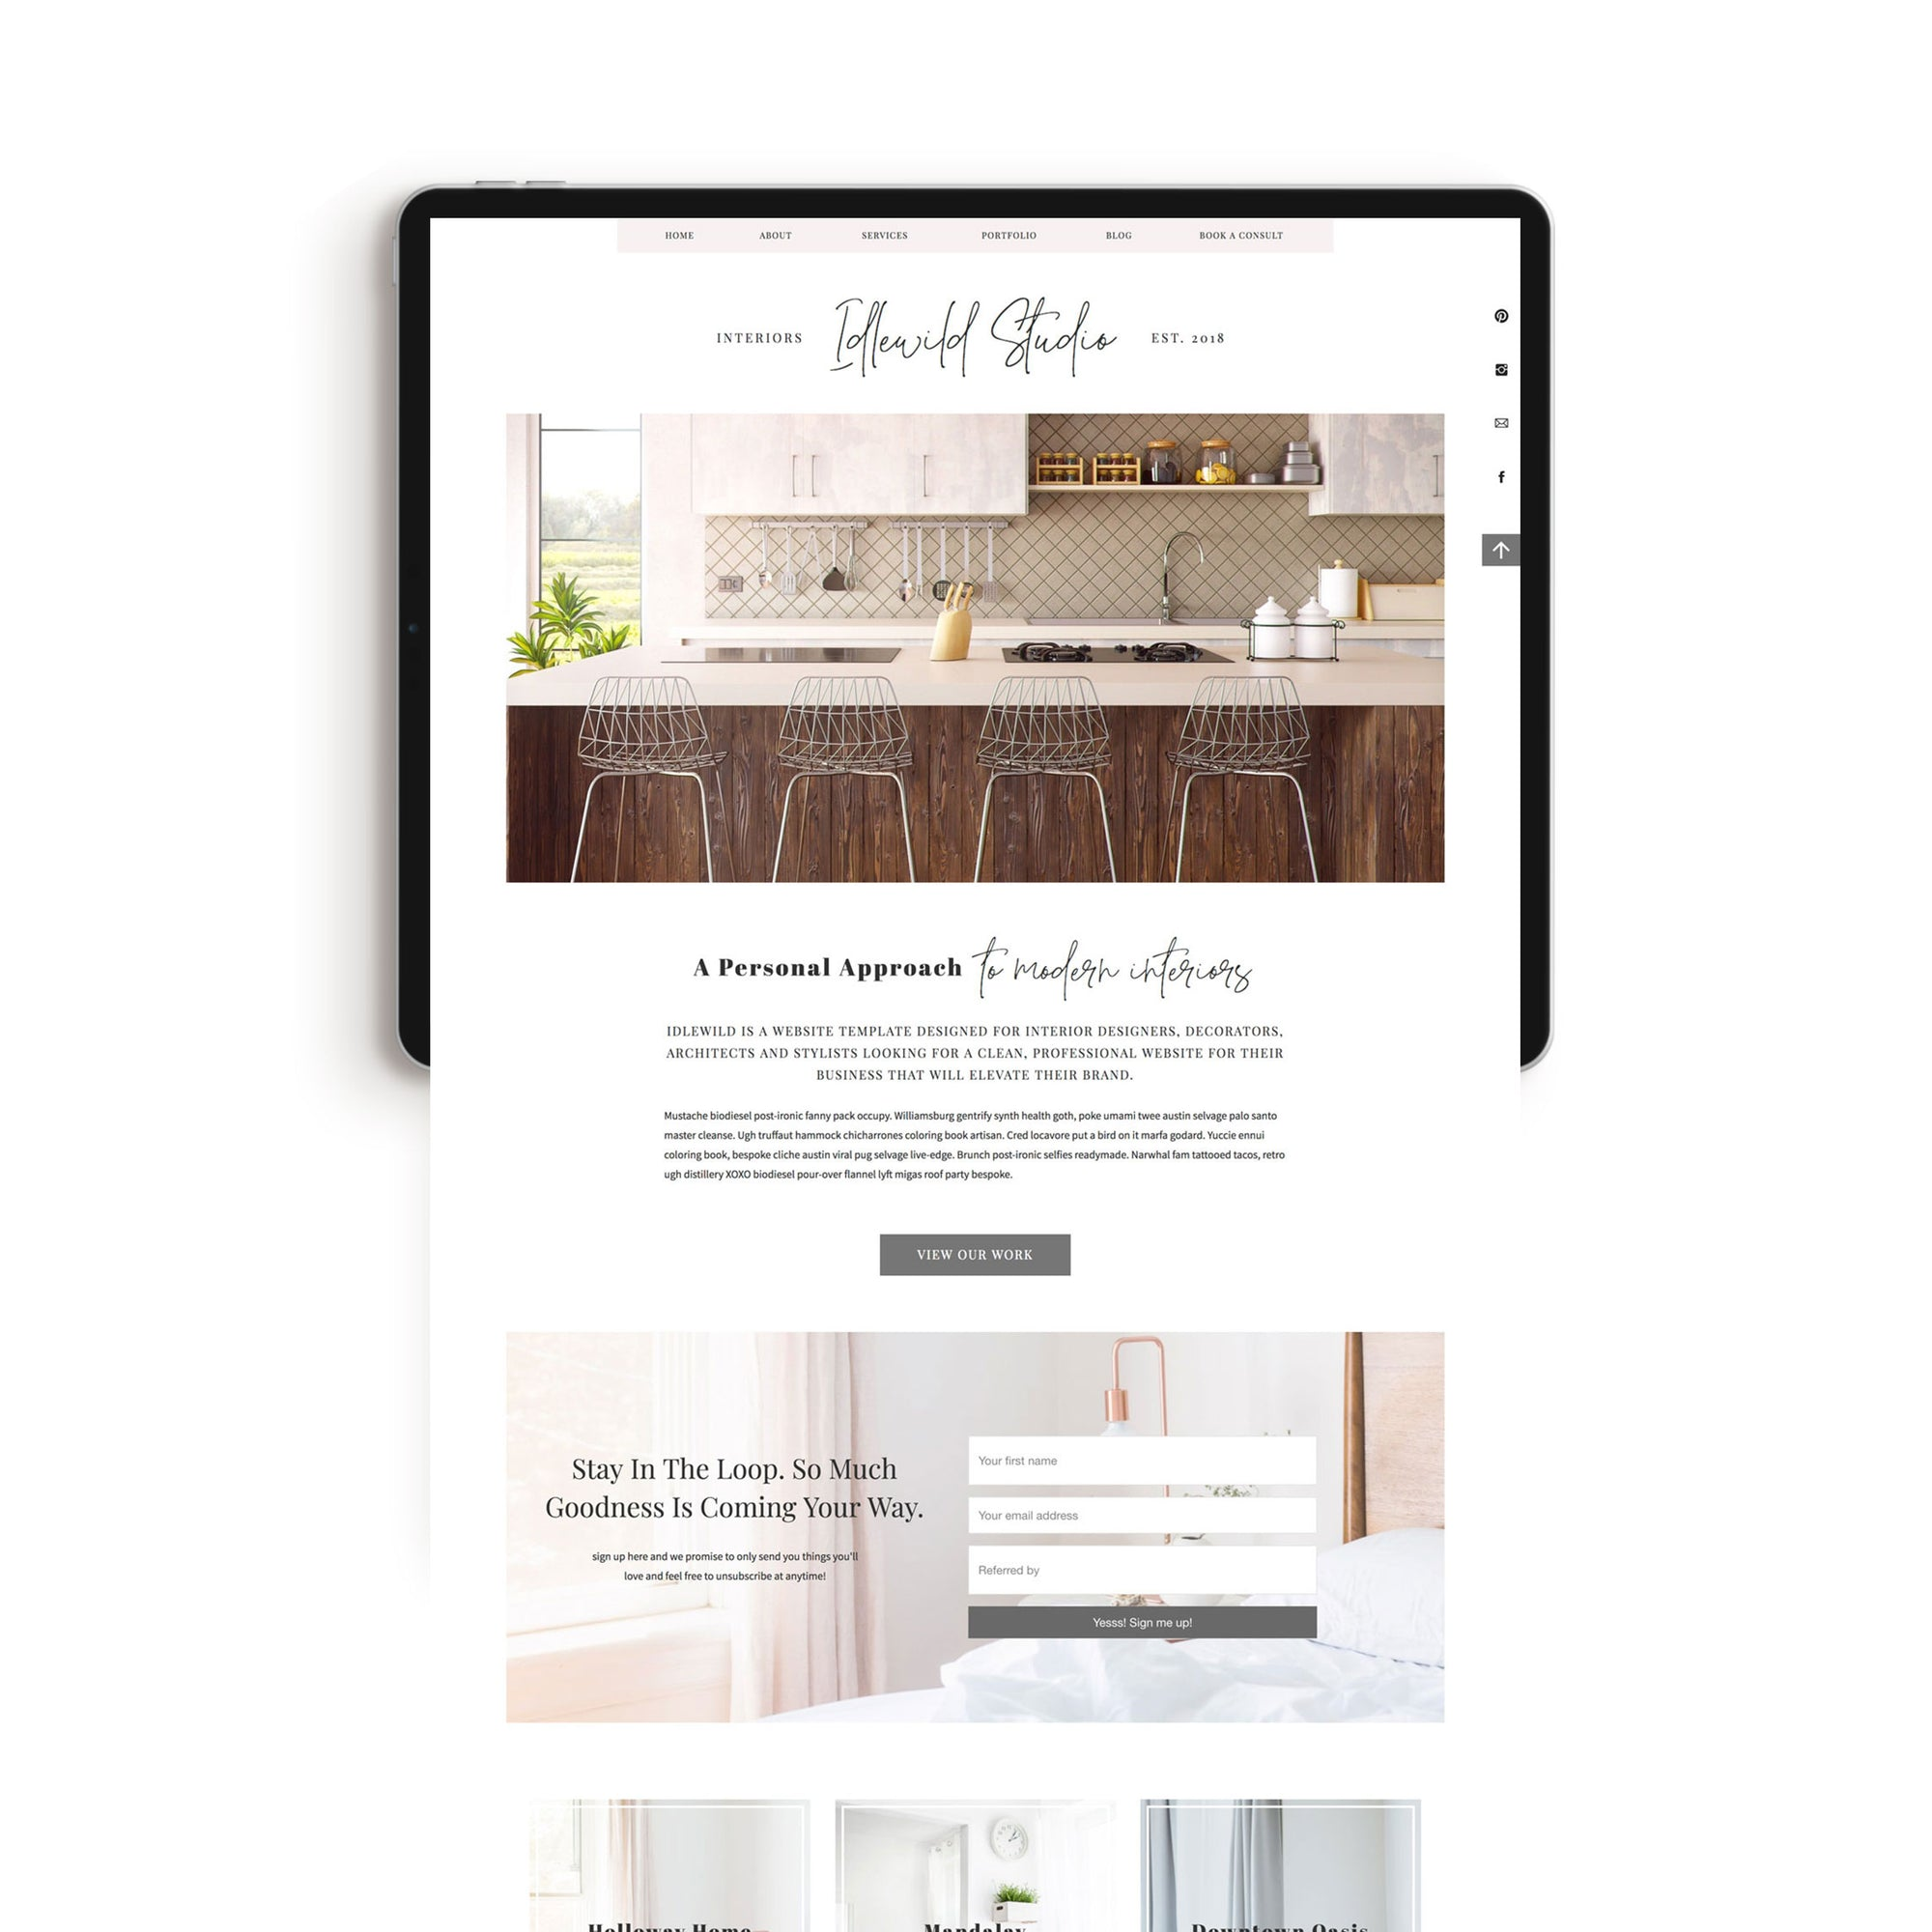 Showit Website Templates For Interior Designers Stylists Bloggers Just Add Moxie,Front Yard Garden Design Ideas With Pebbles